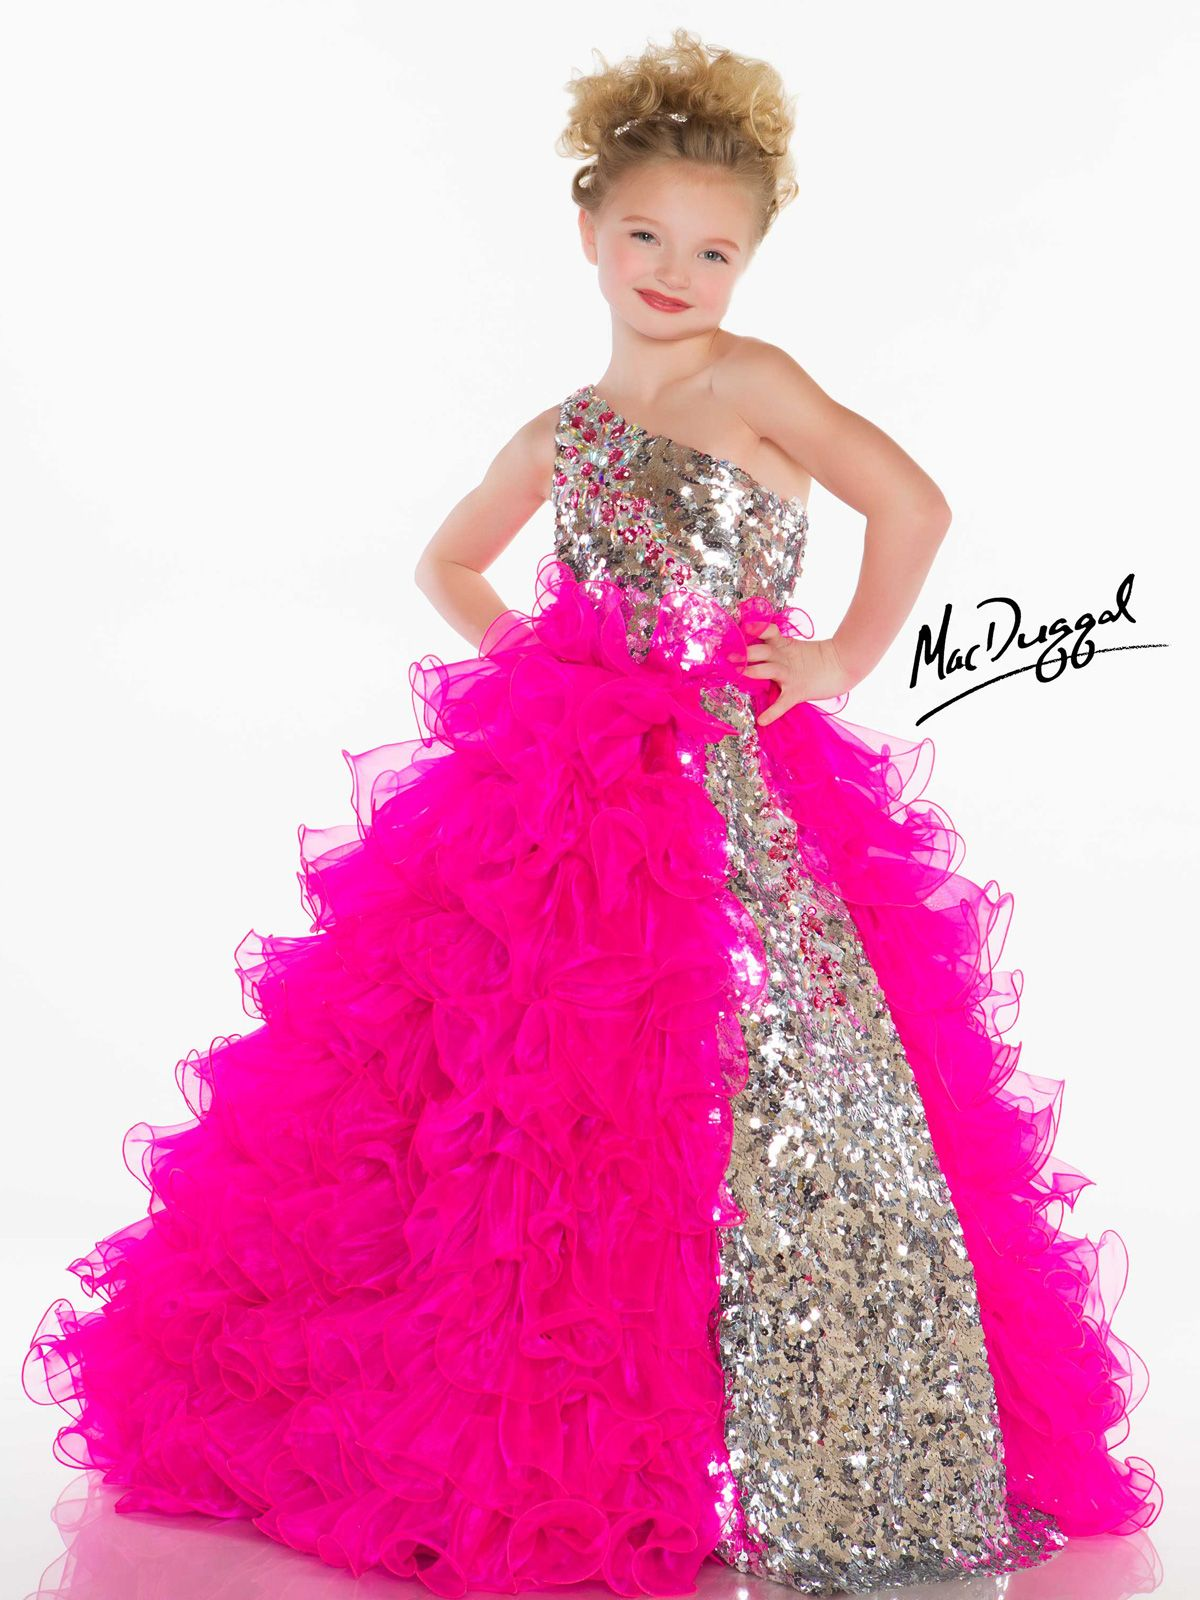 Eye-catching, stunning and glittering describe the beauty of this little  girls pageant gown